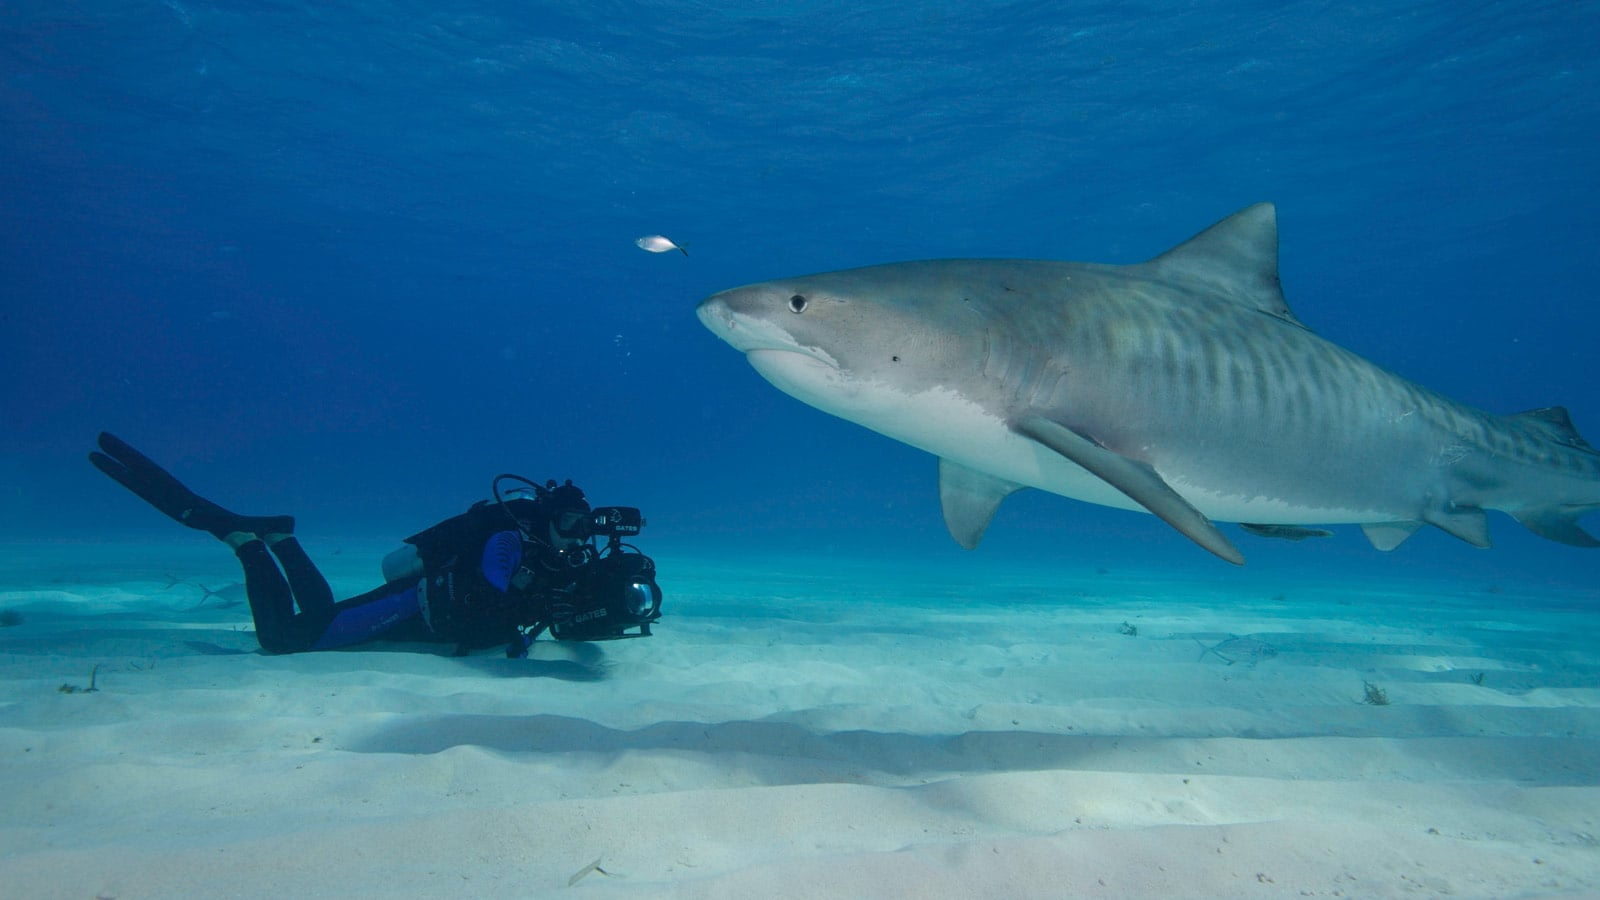 Cameraman diving with a shark